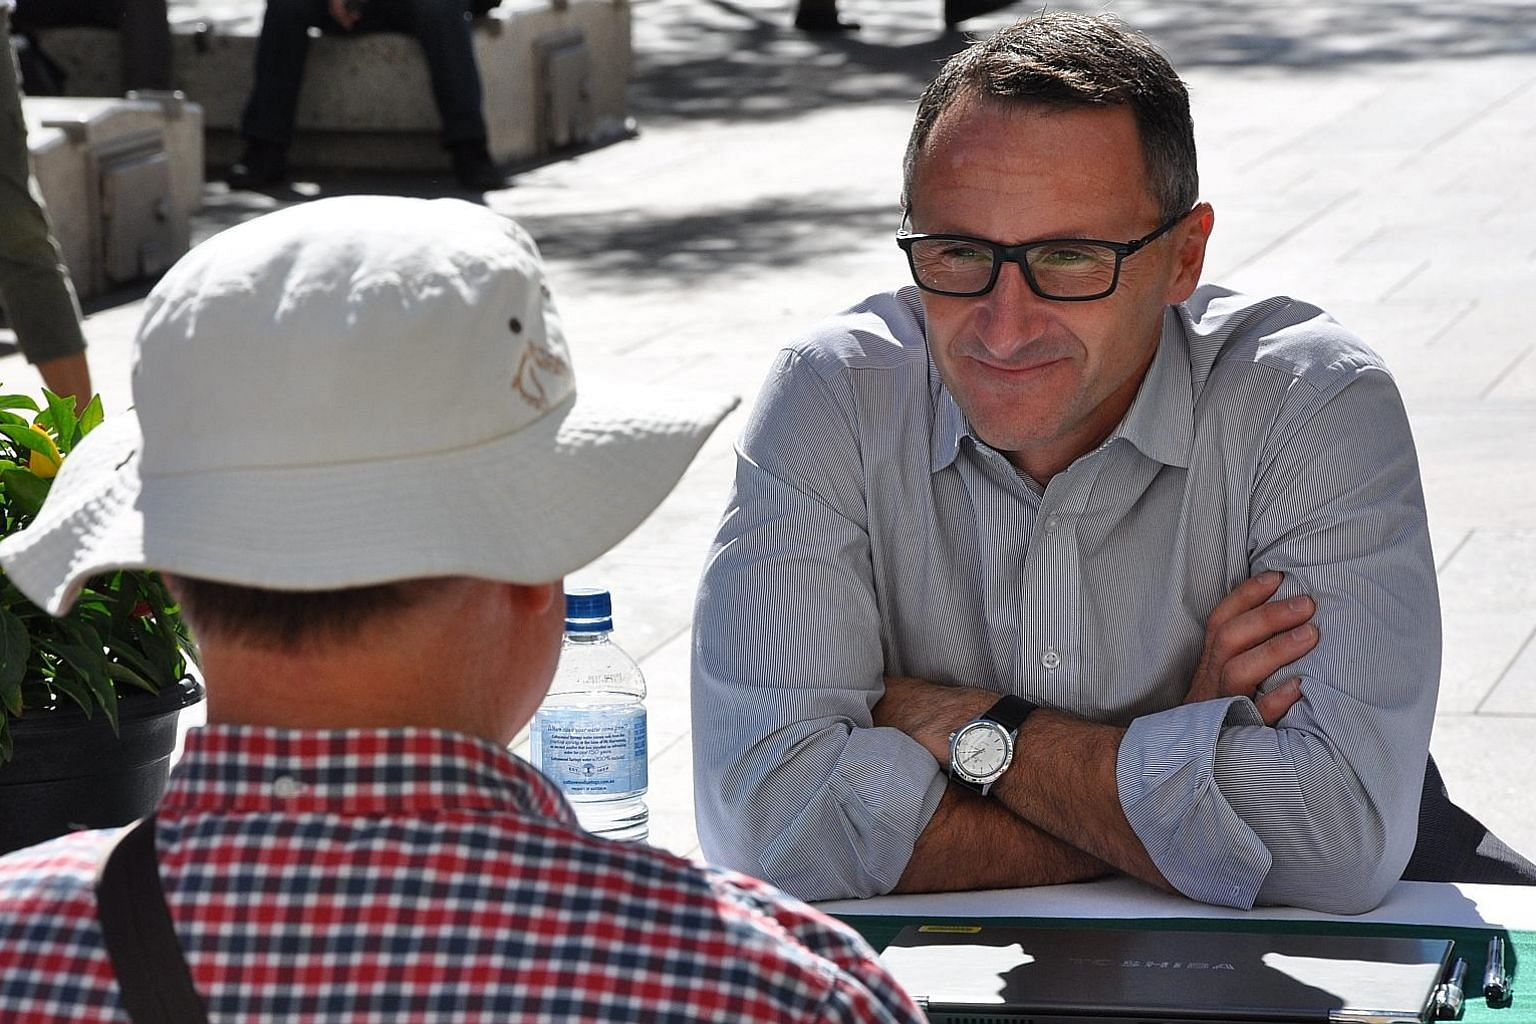 Dr Di Natale talking to a voter in Perth last week. The sports-obsessed farmer and former medical doctor has sought to give the Greens a fresh, modern image after becoming their leader last year.